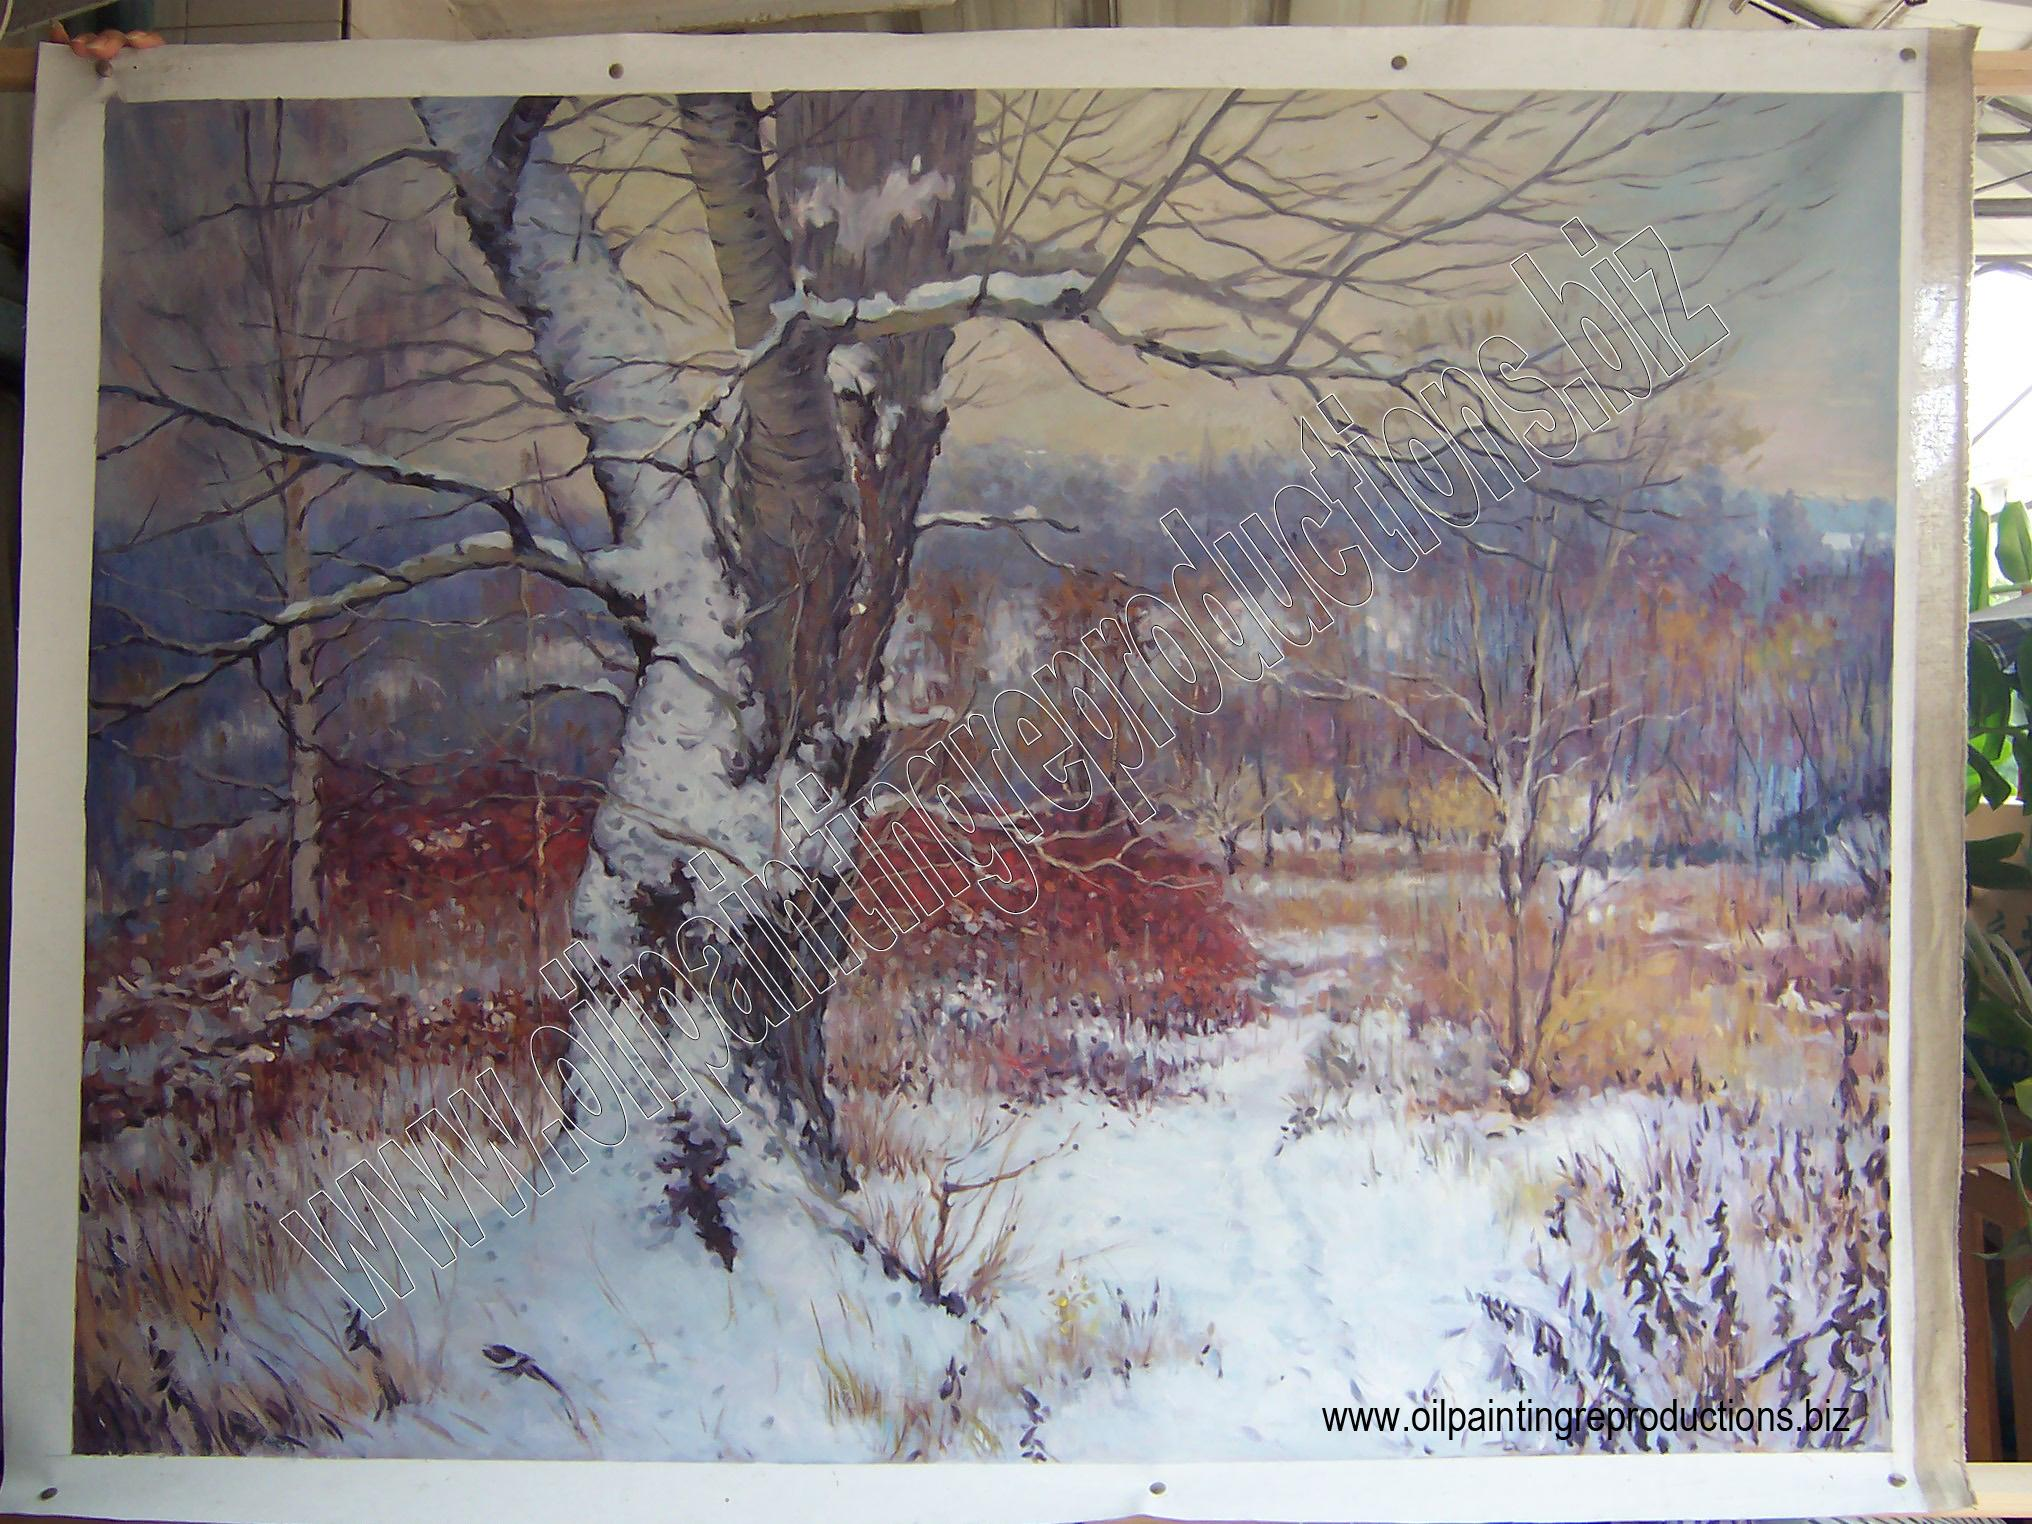 Painting Quality Oil Painting Reproductions Www